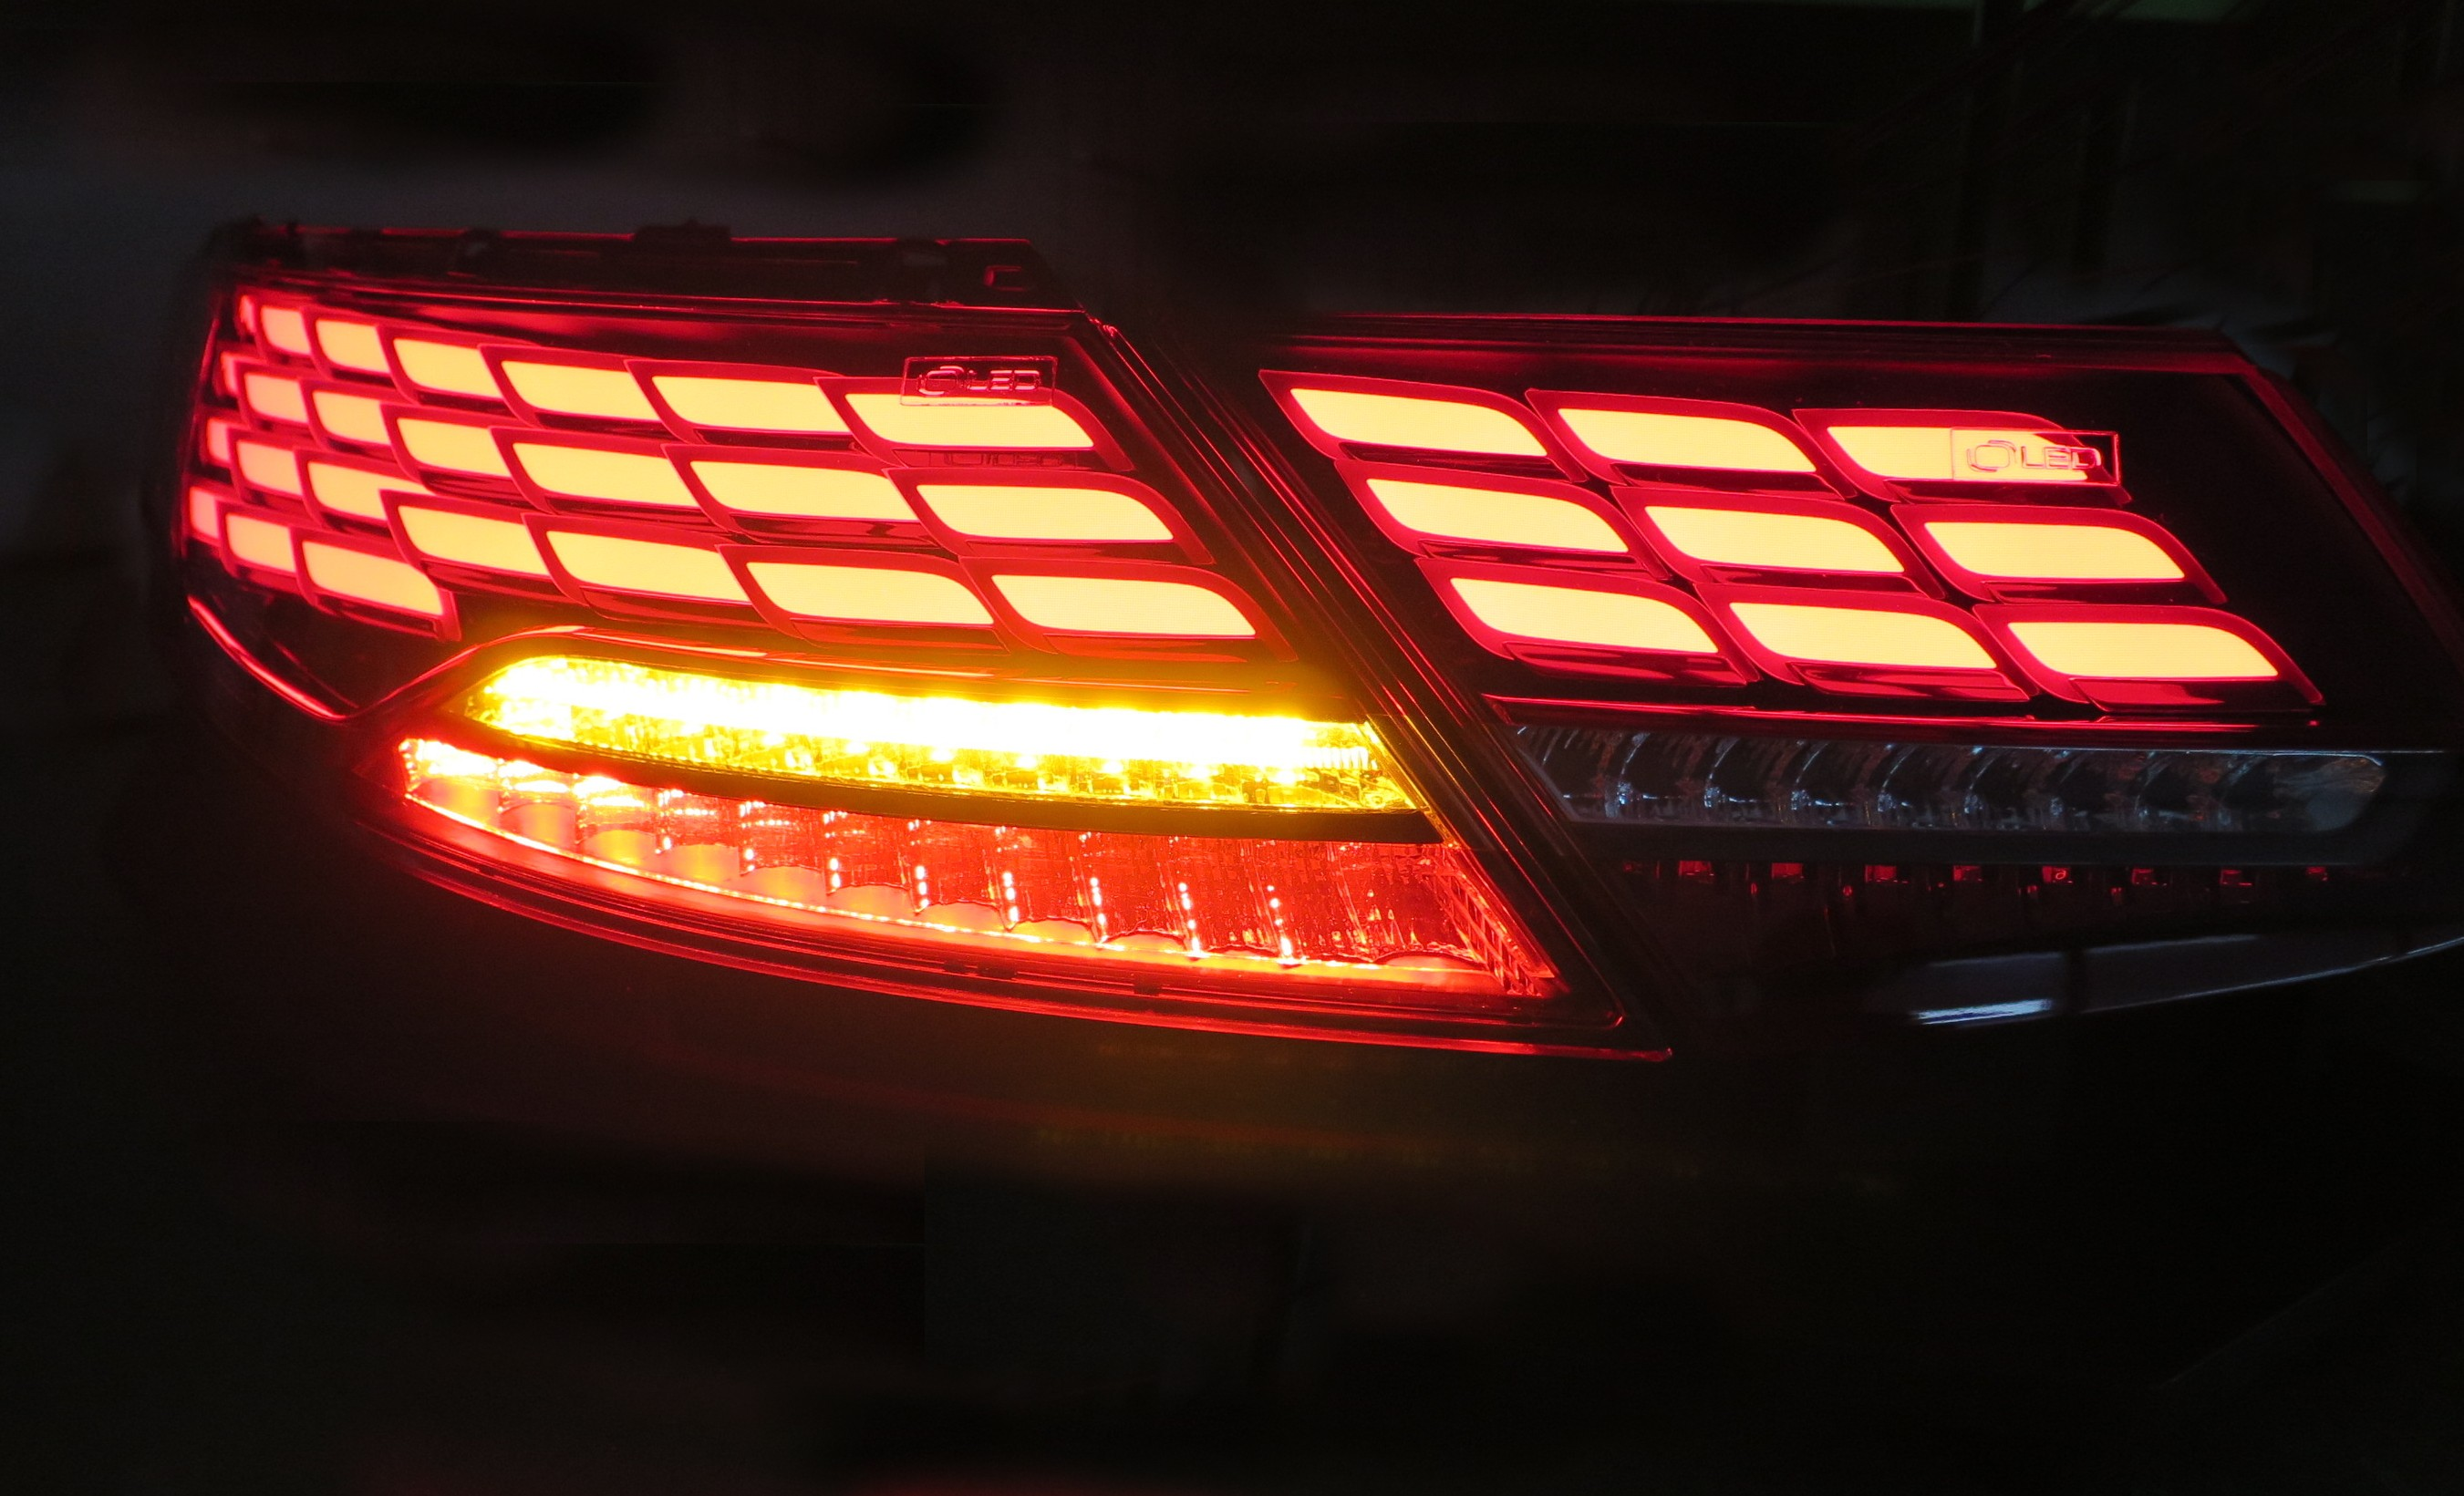 The same vehicle rear lamp displayed in the dark to show its brake and car indicator lights in action at the Frankfurt Motor Show.